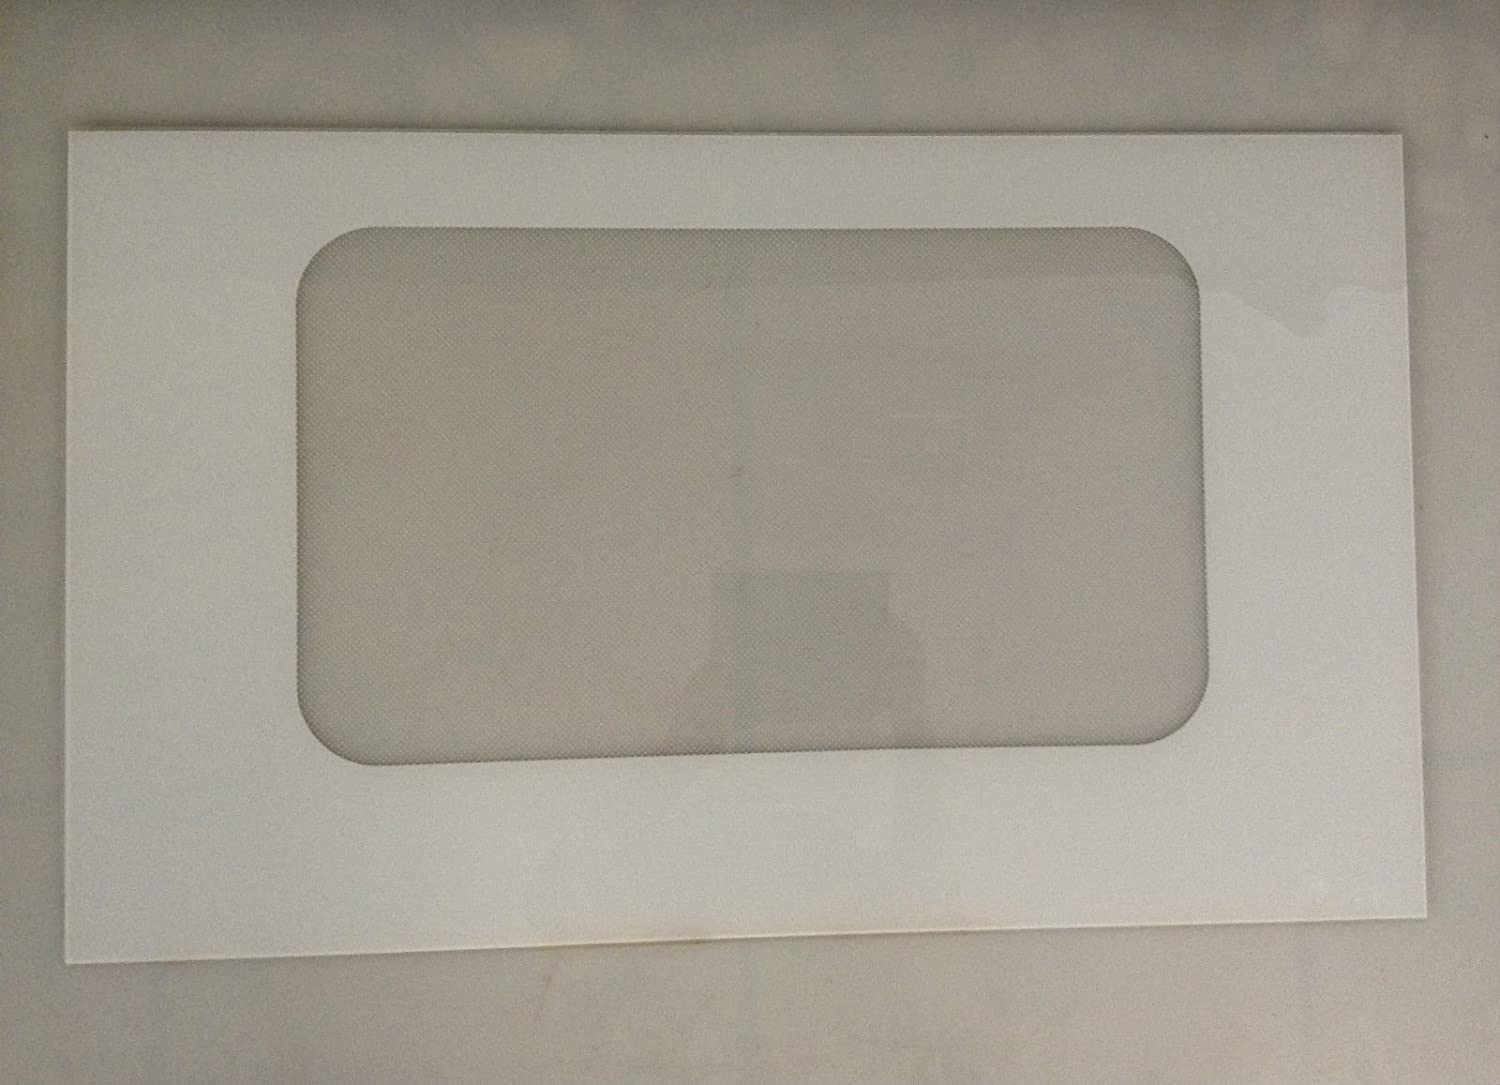 GE Part Number WB57T10160 GLASS OVEN DR OTR (WHITE) by GE  B0093QZV3I